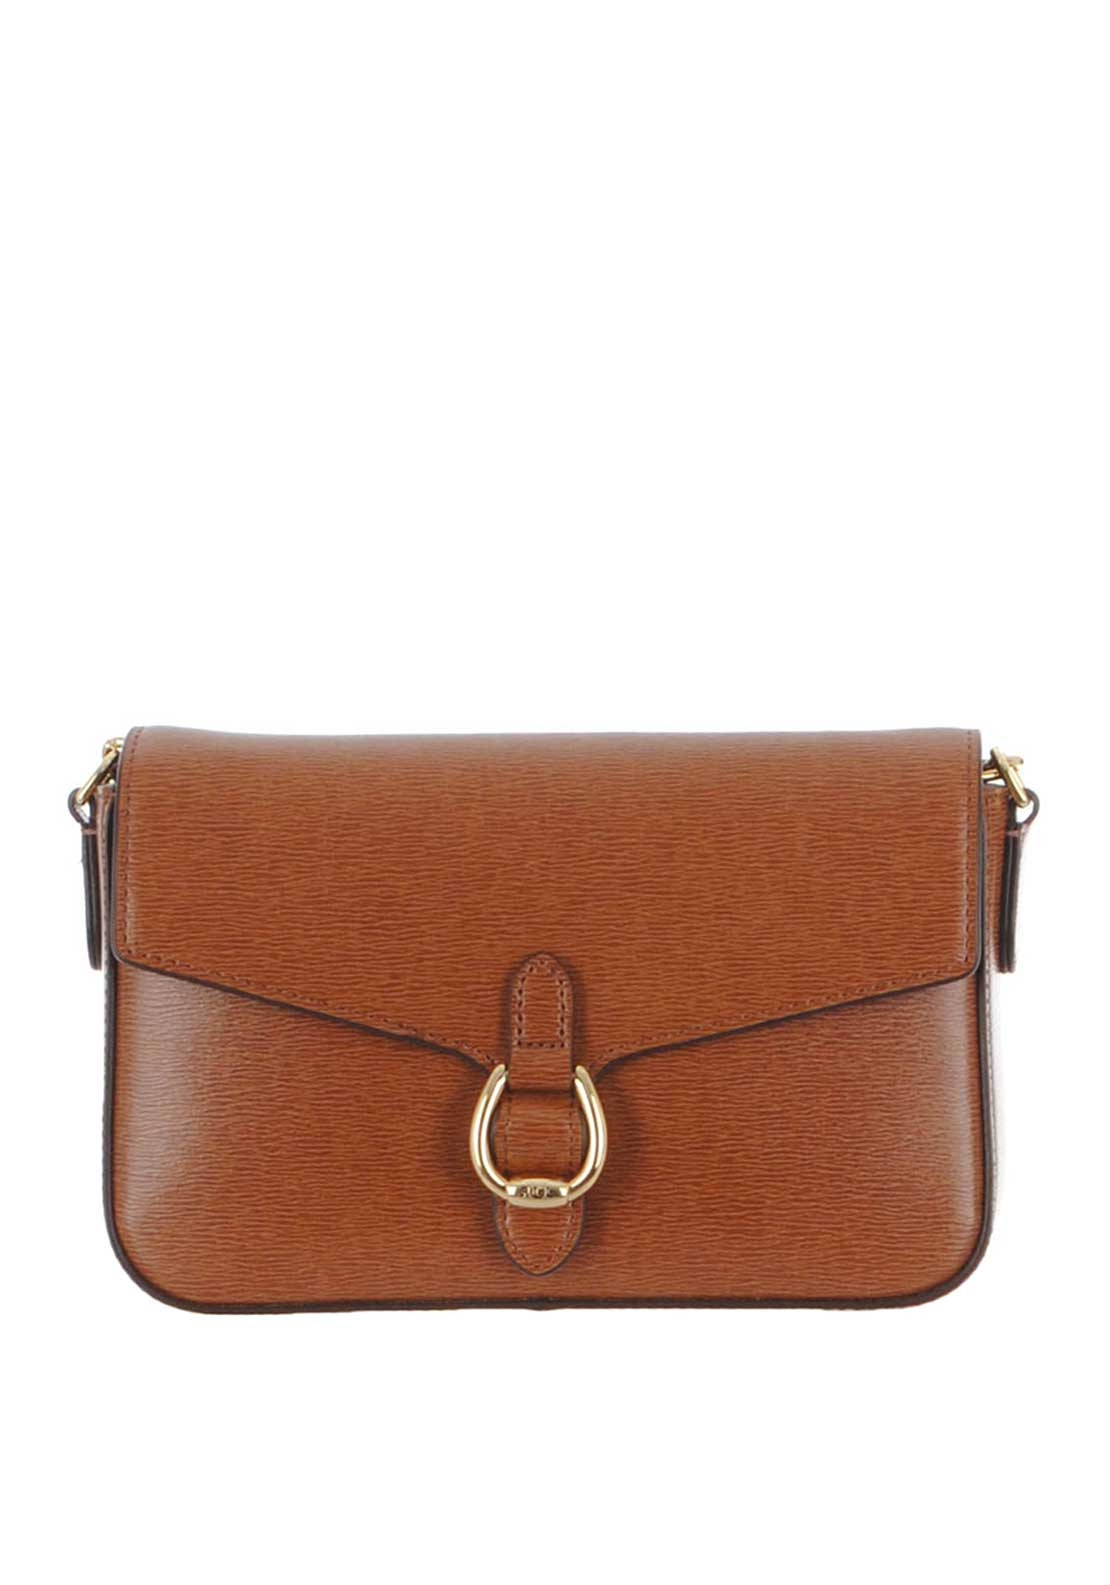 86f51a2d5 Ralph Lauren Bennington Crossbody Bag, Brown. Be the first to review this  product